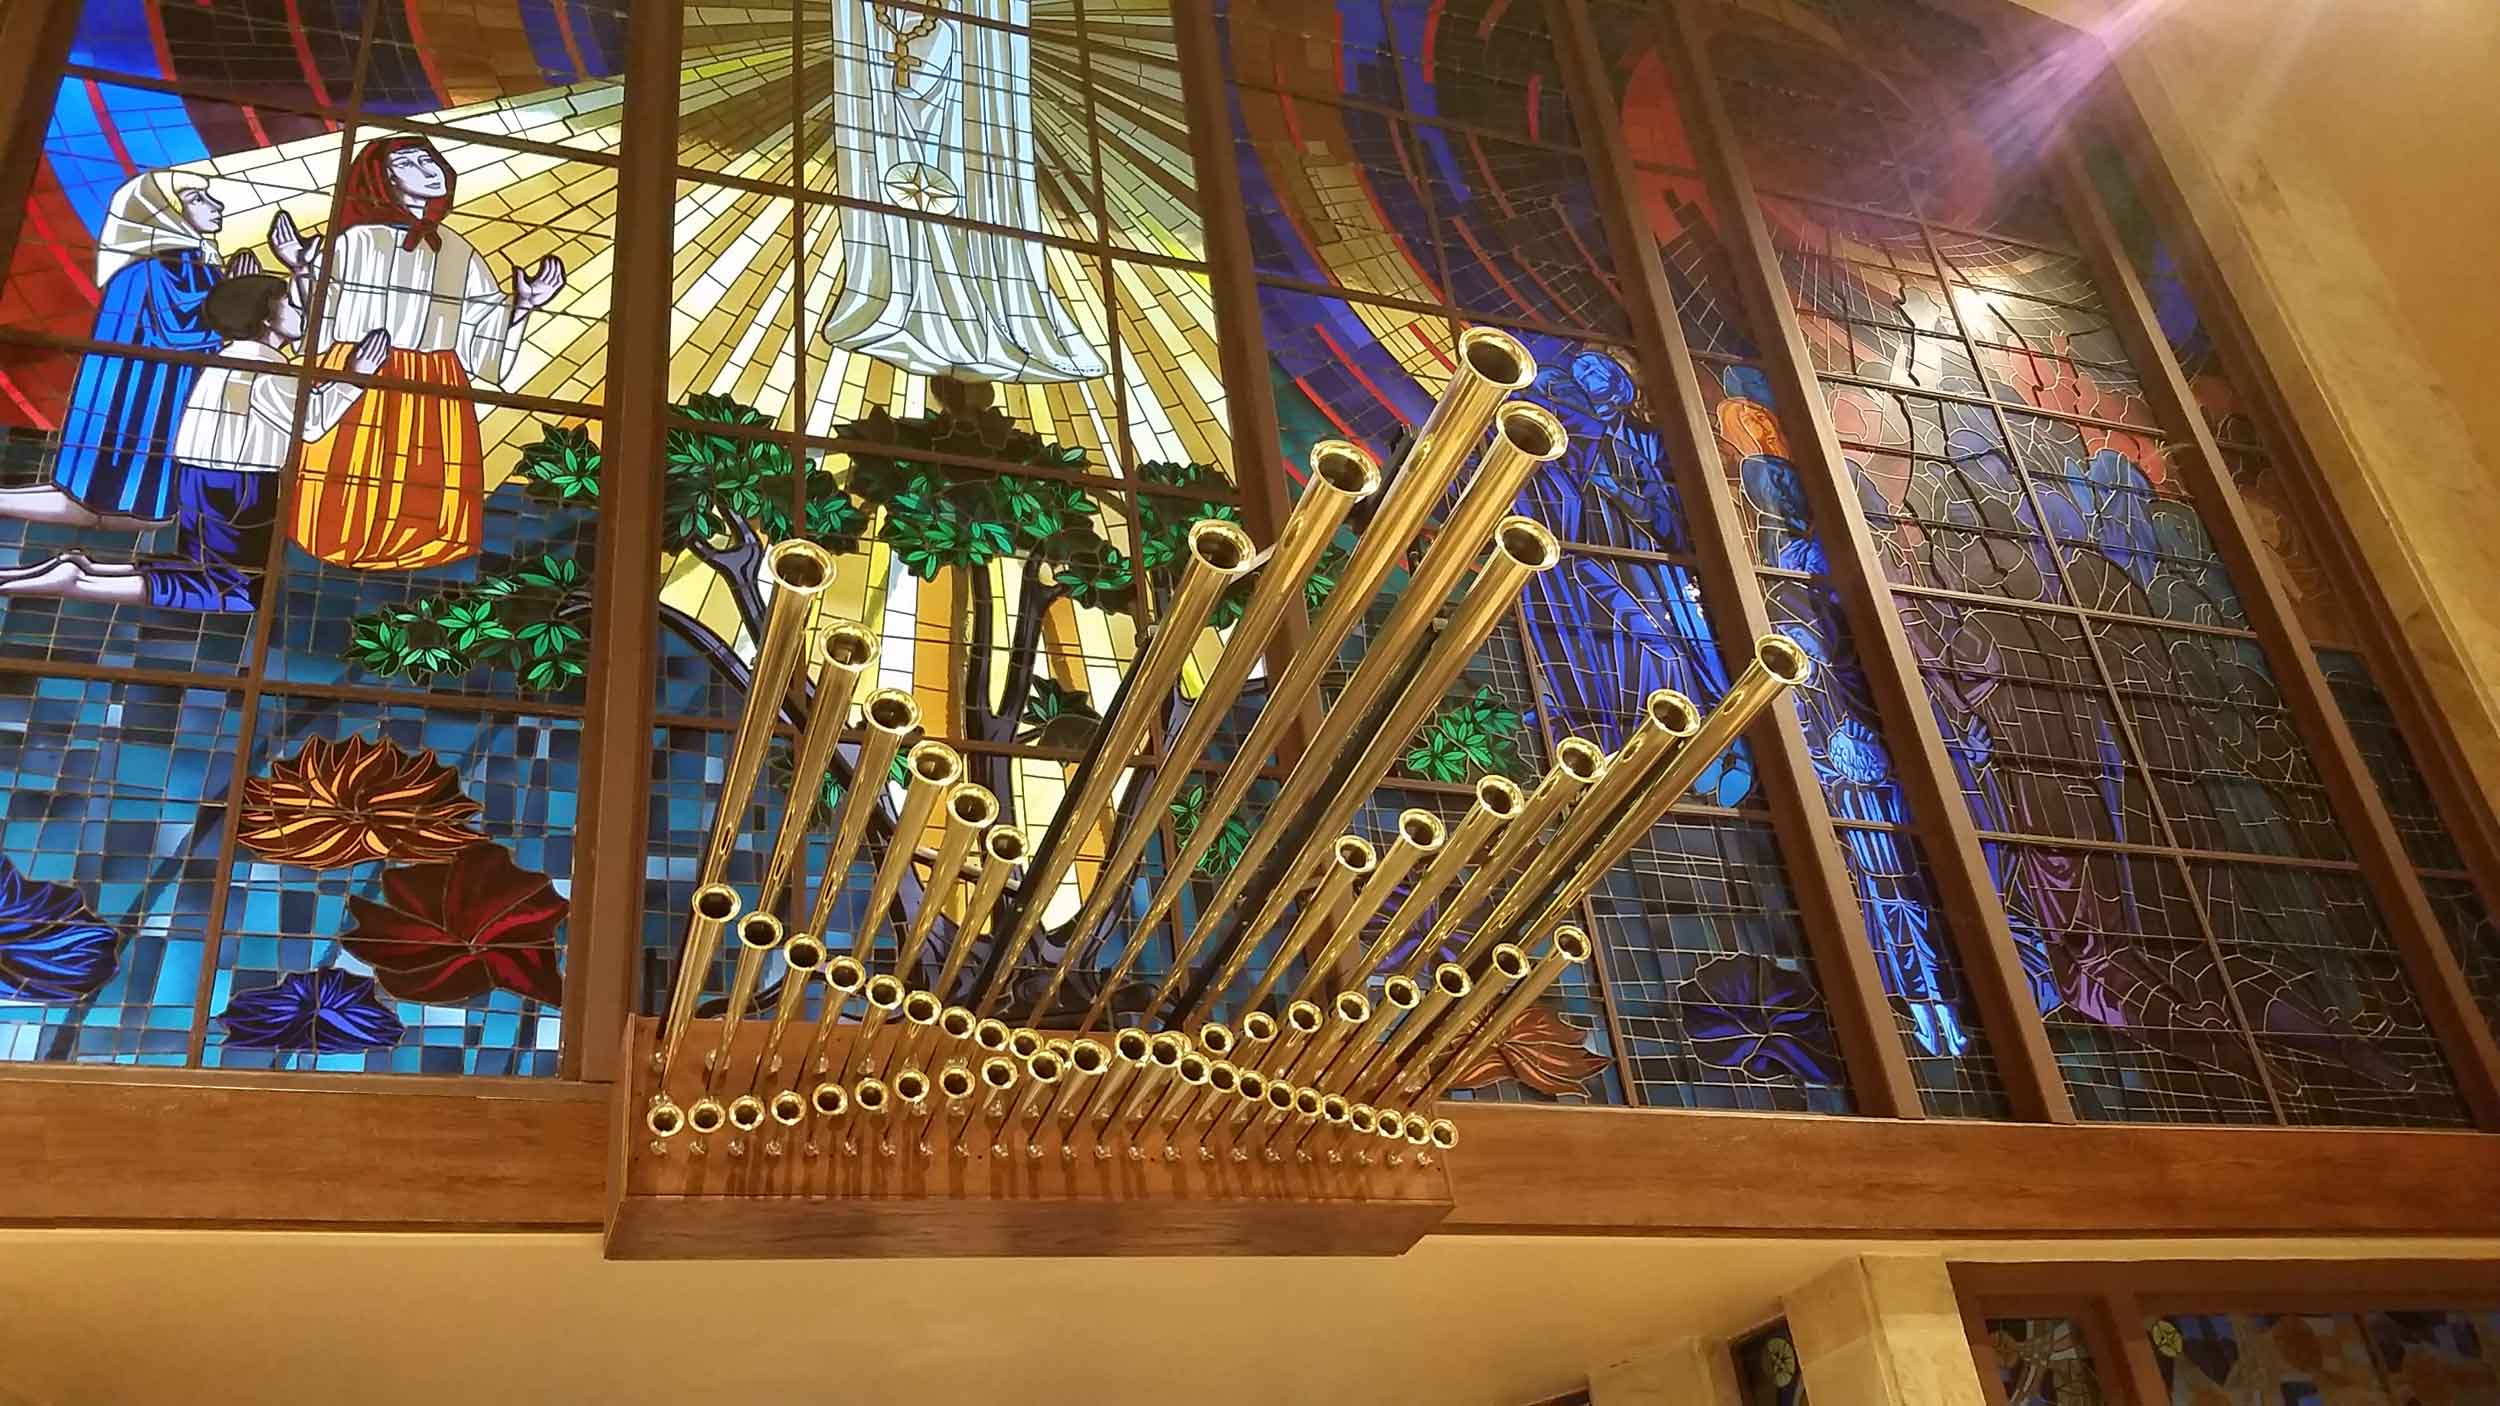 Work by Kegg Pipe Organ Builders